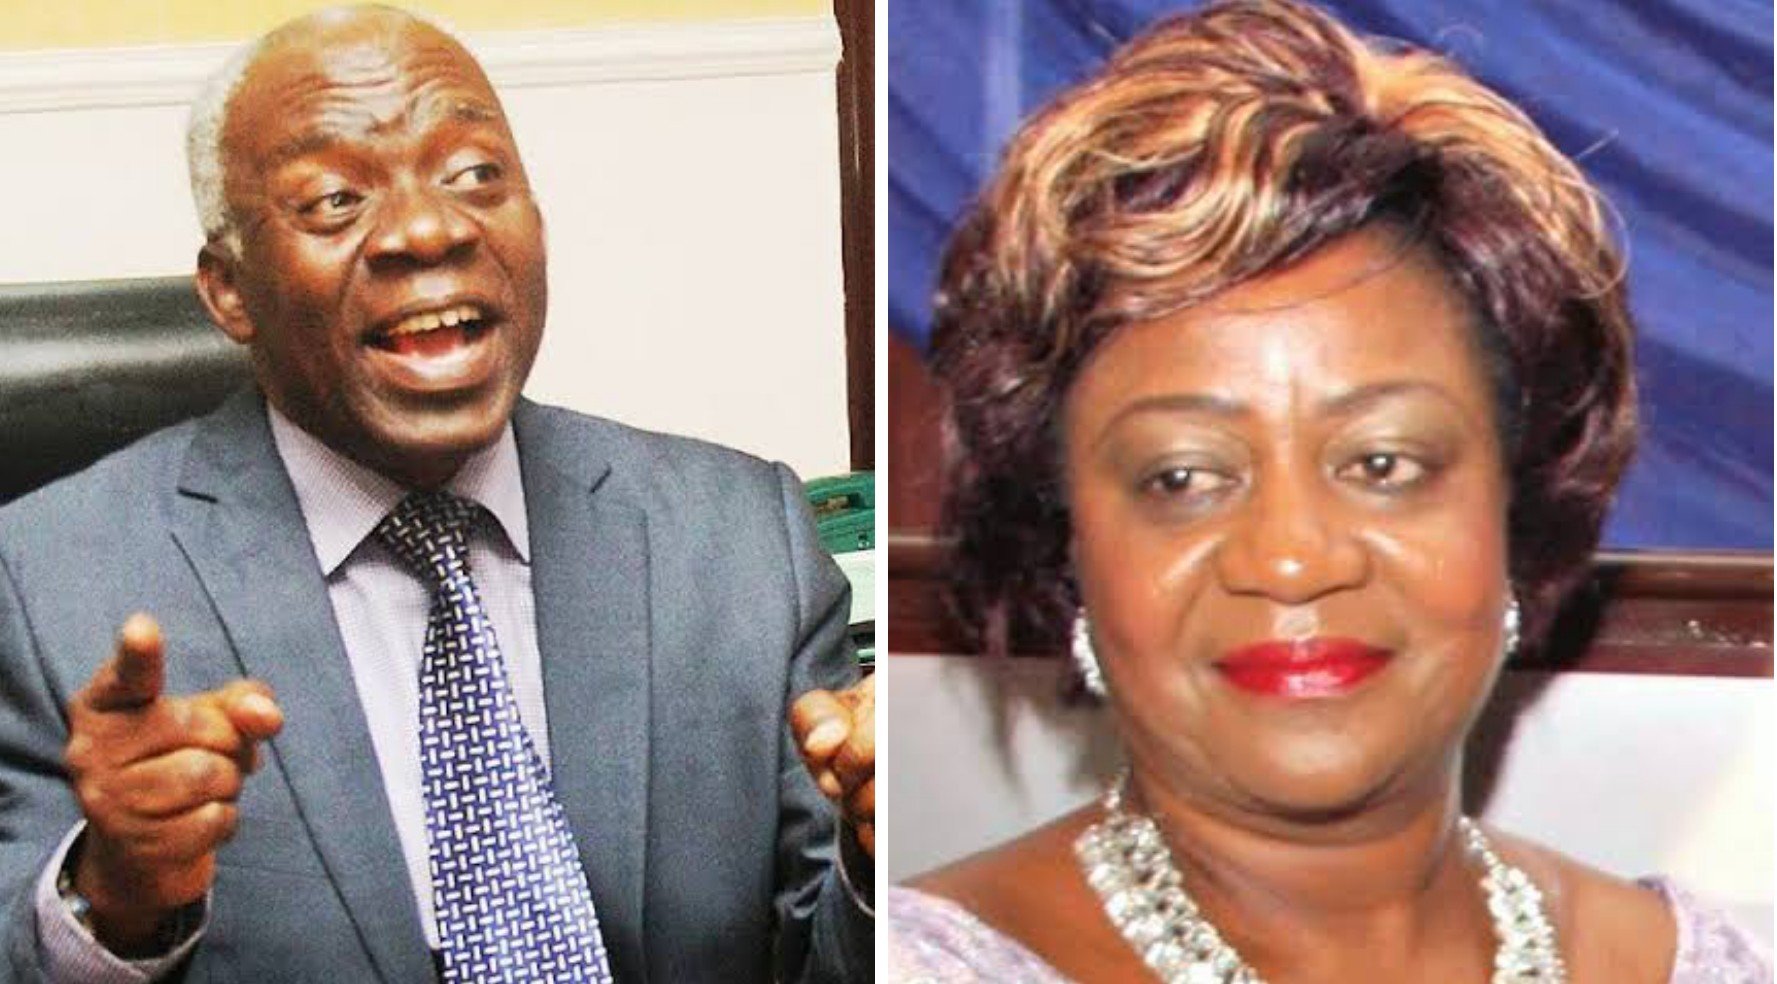 Onochie's appointment as INEC commissioner illegal, says Falana